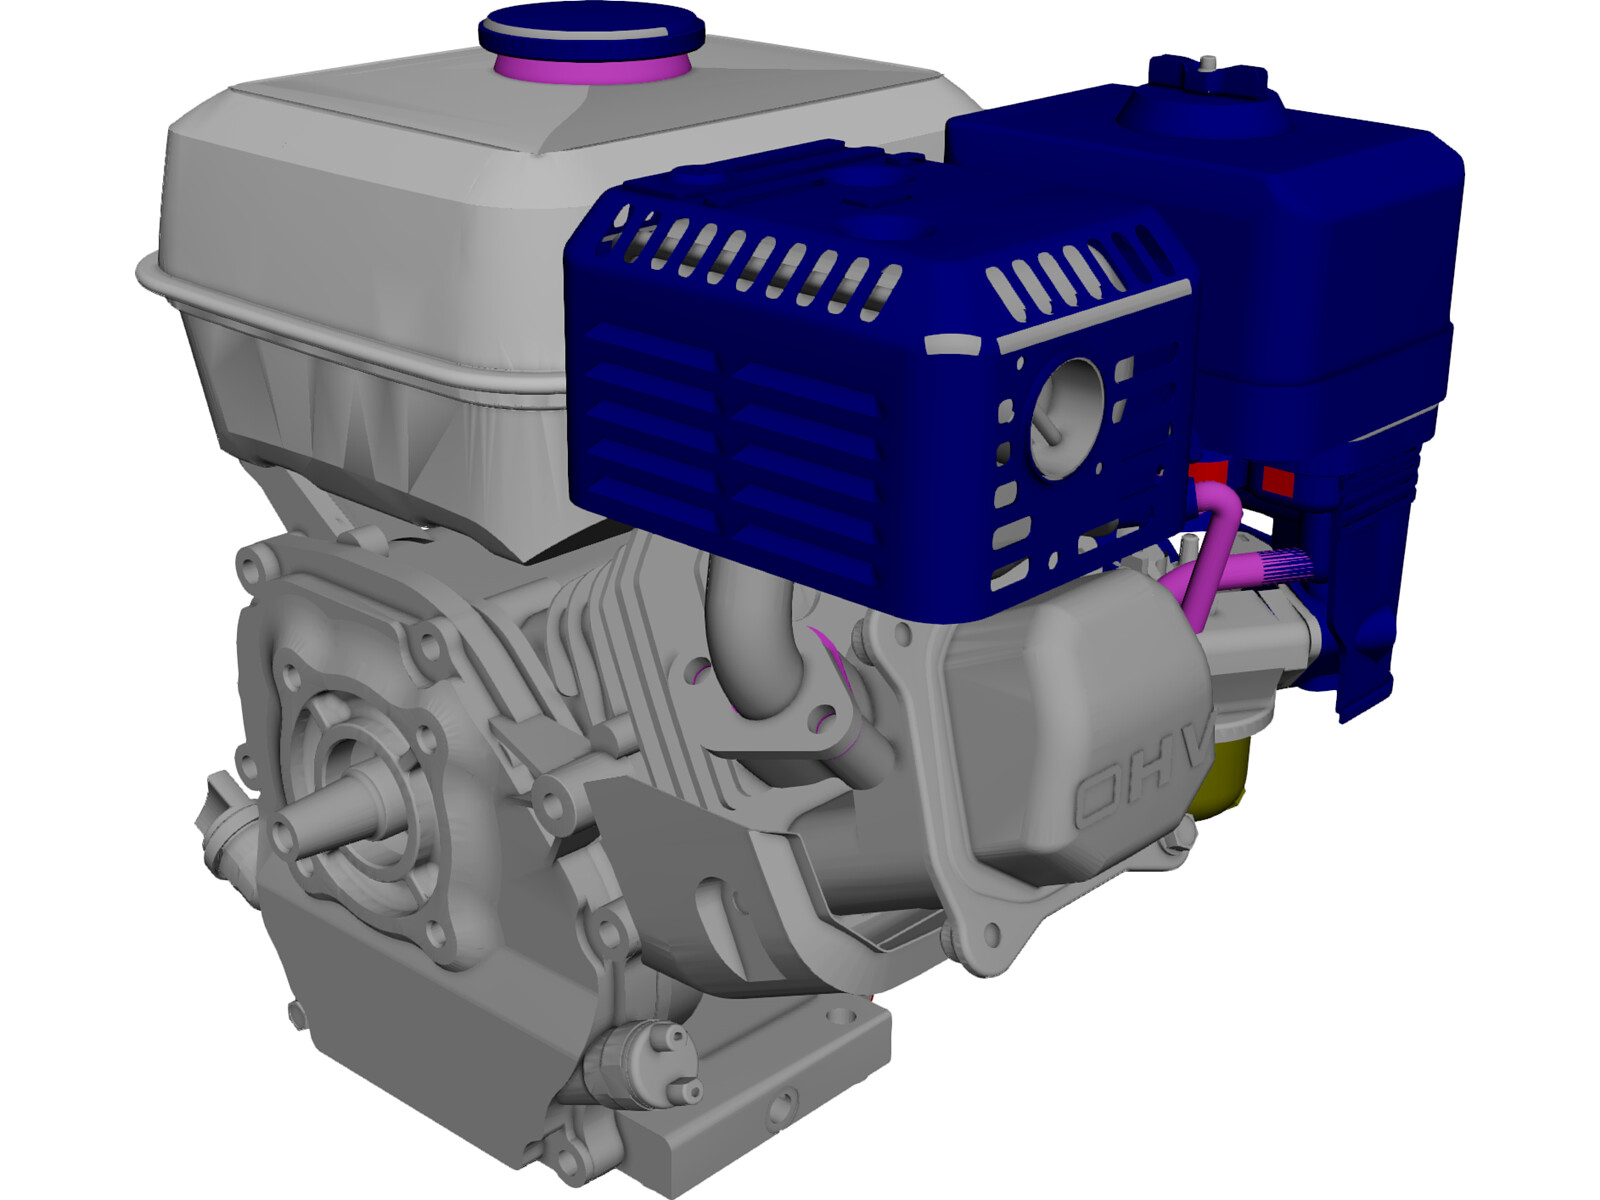 Honda GX160-1 Engine 3D CAD Model